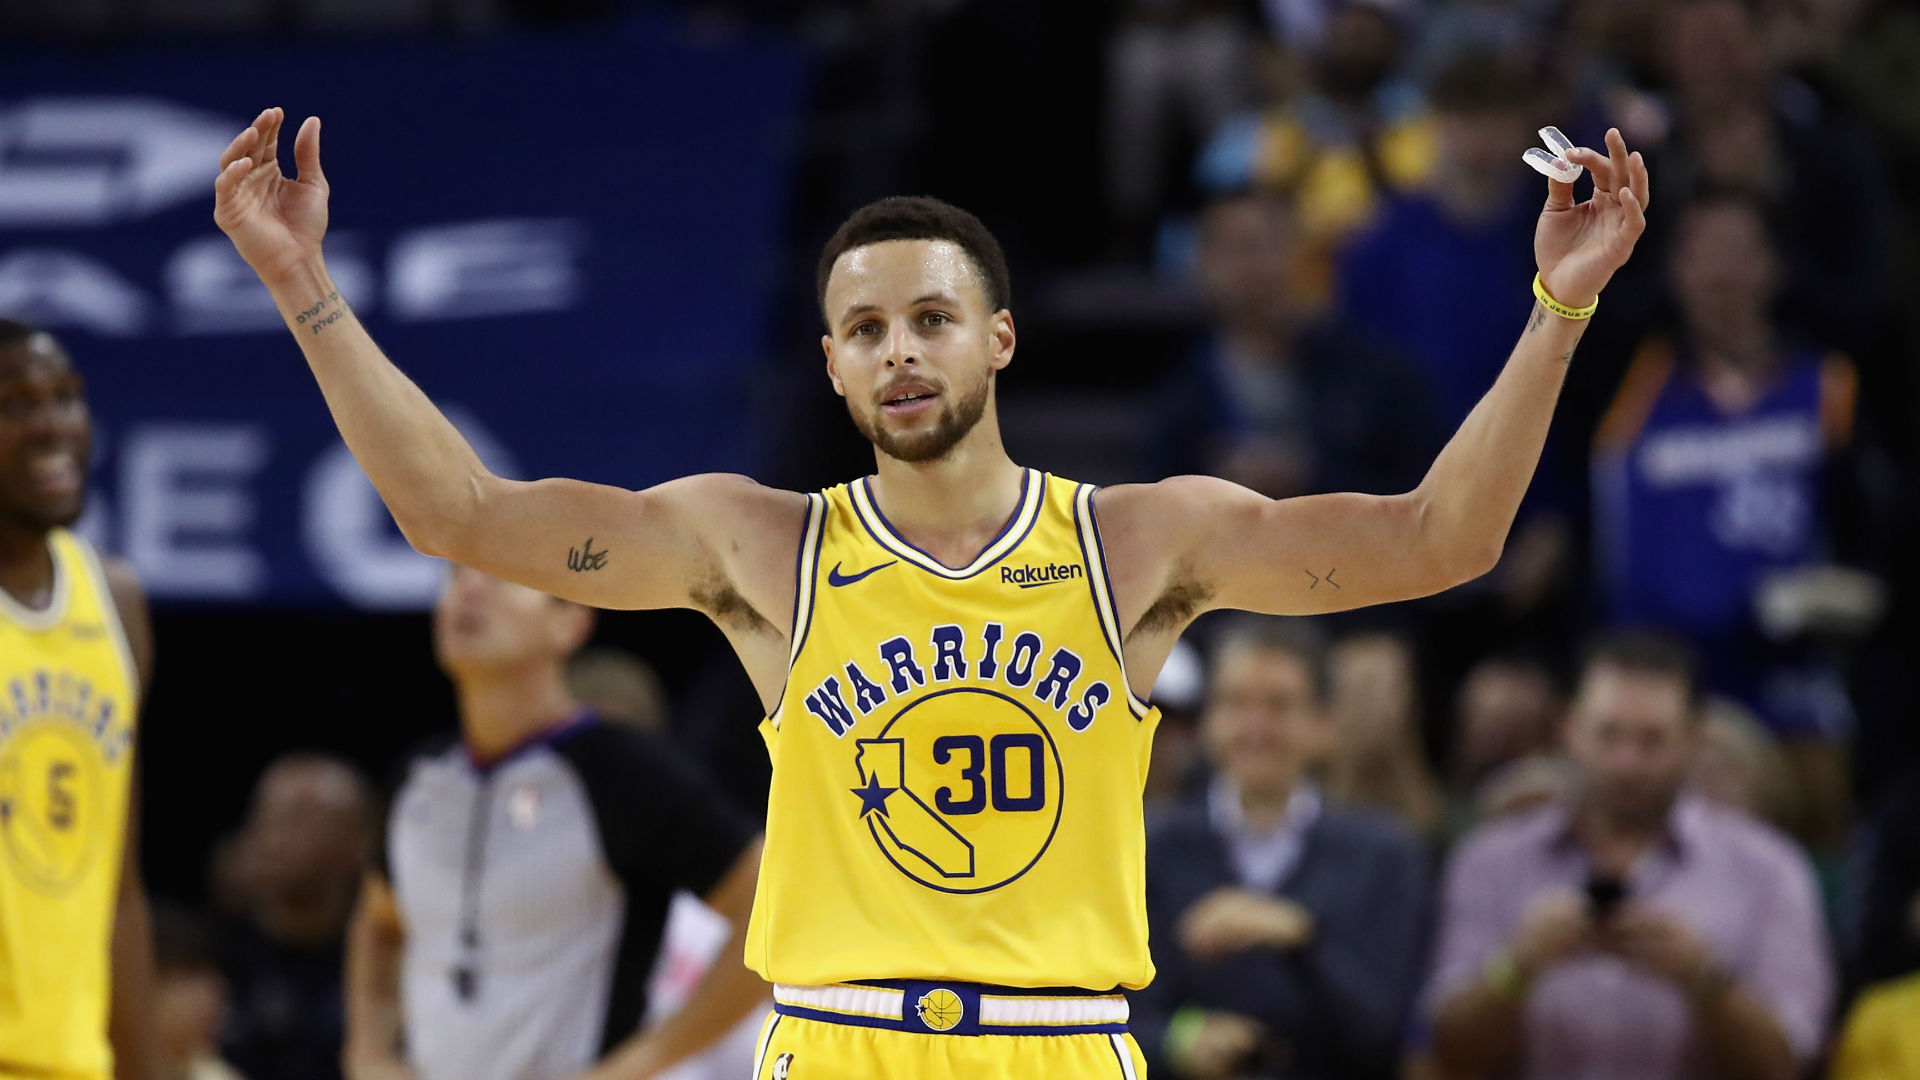 Warriors' guard Steph Curry 'might' return as soon as Friday to face Raptors | NBA.com Australia | The official site of the NBA